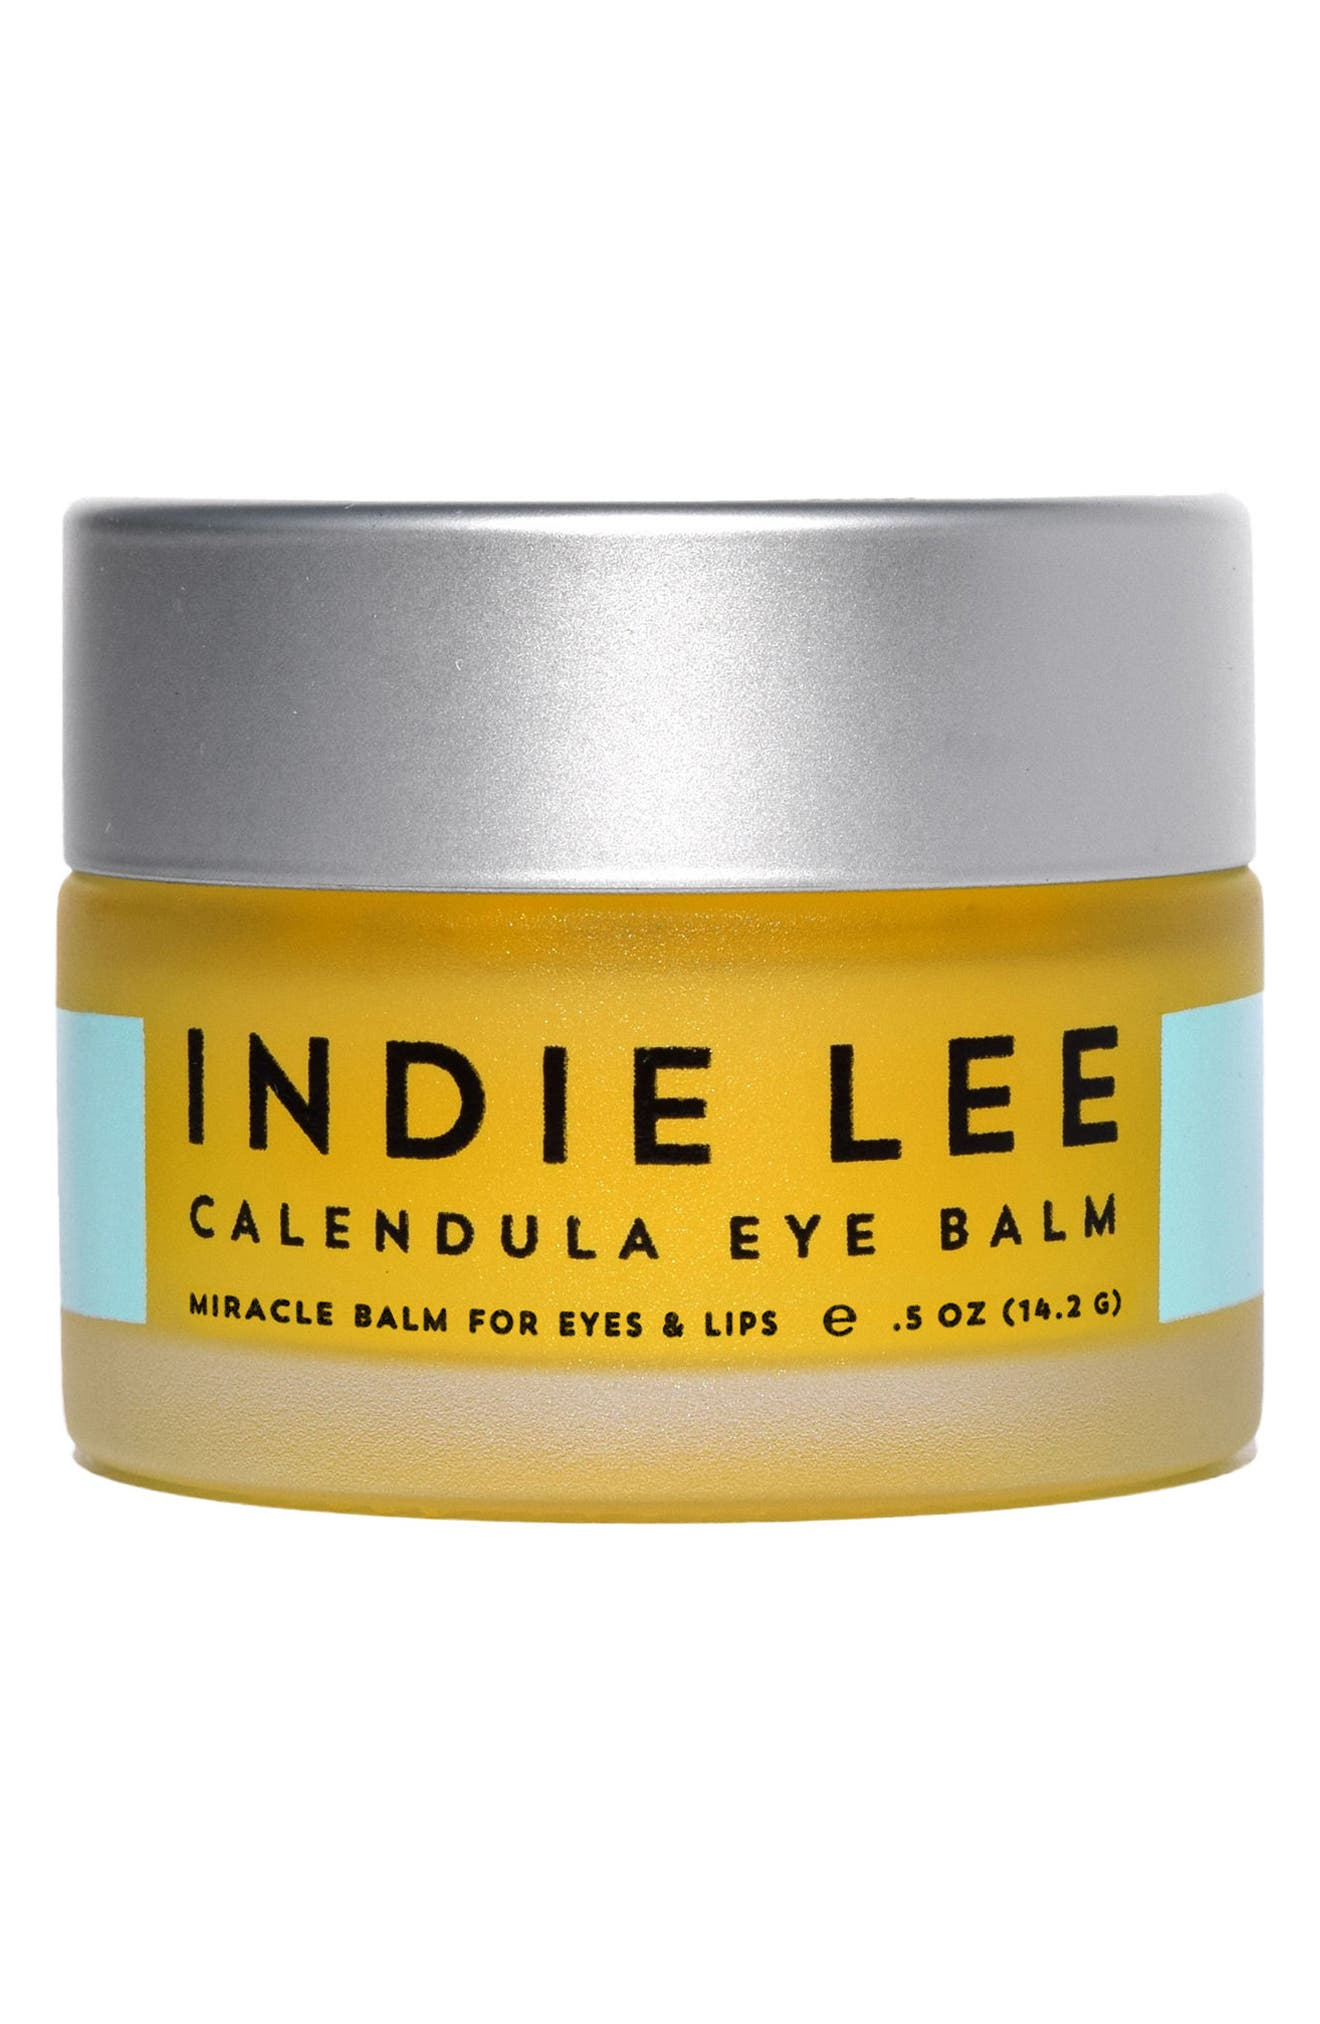 Calendula Eye Balm,                         Main,                         color, 000